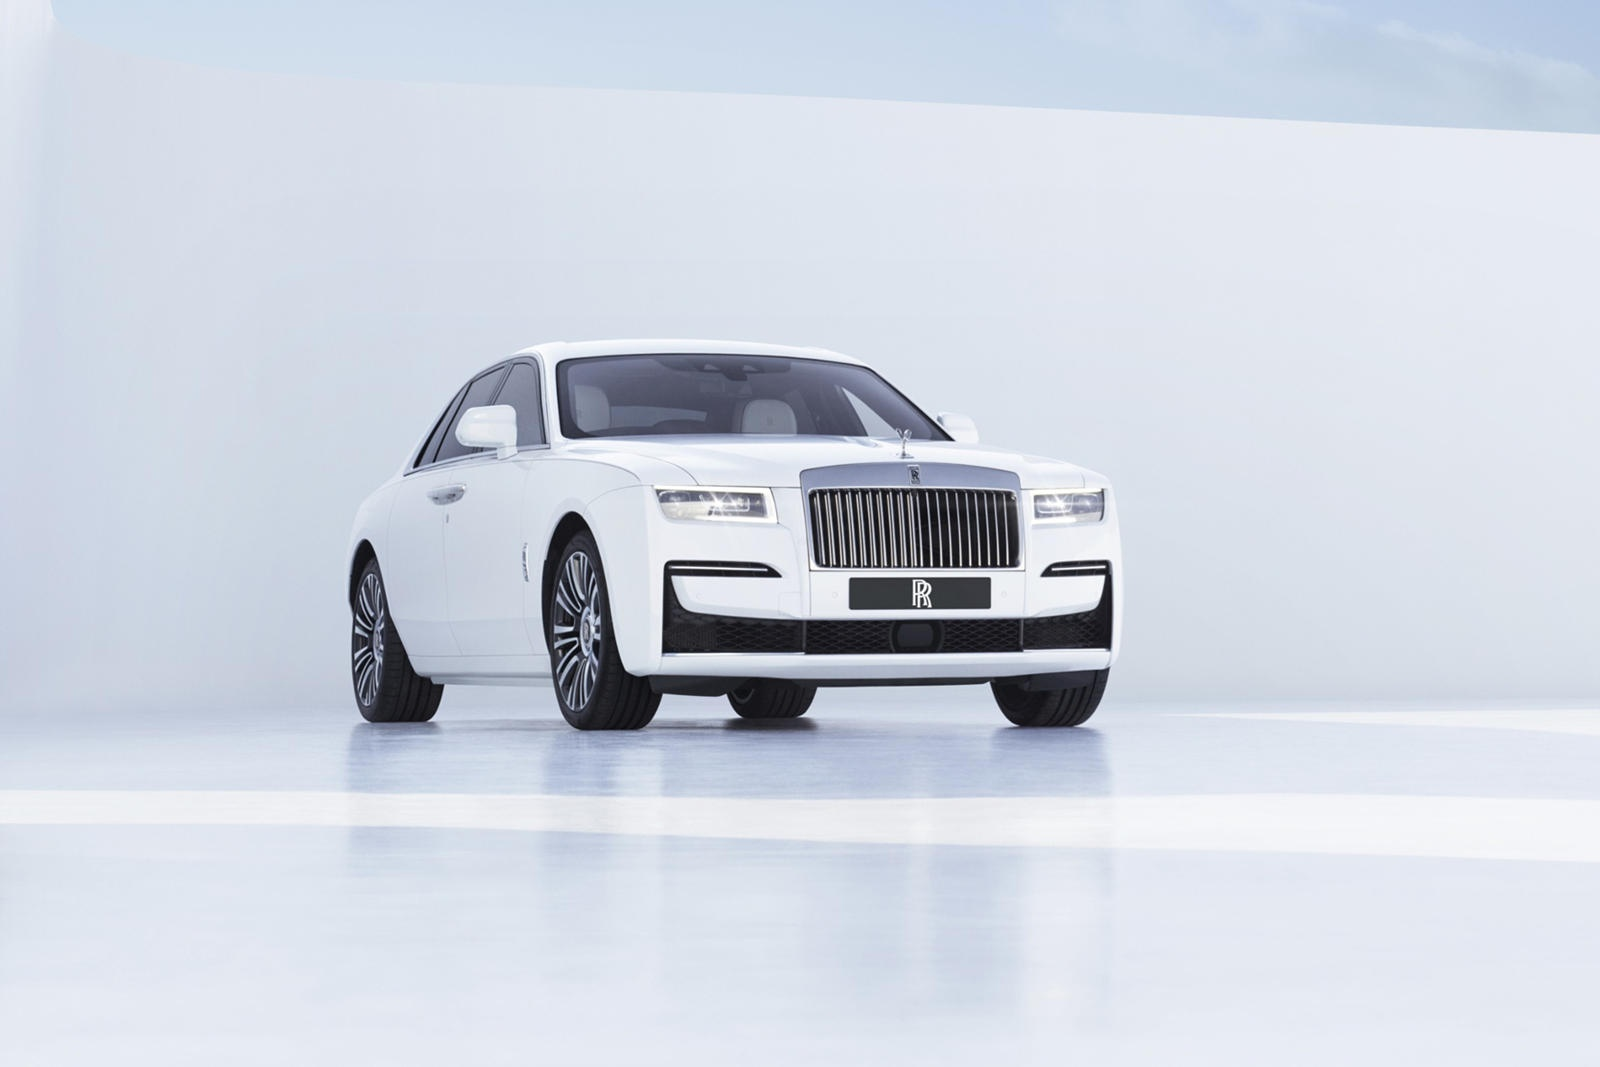 Danh gia Rolls-Royce Ghost 2021 anh 10